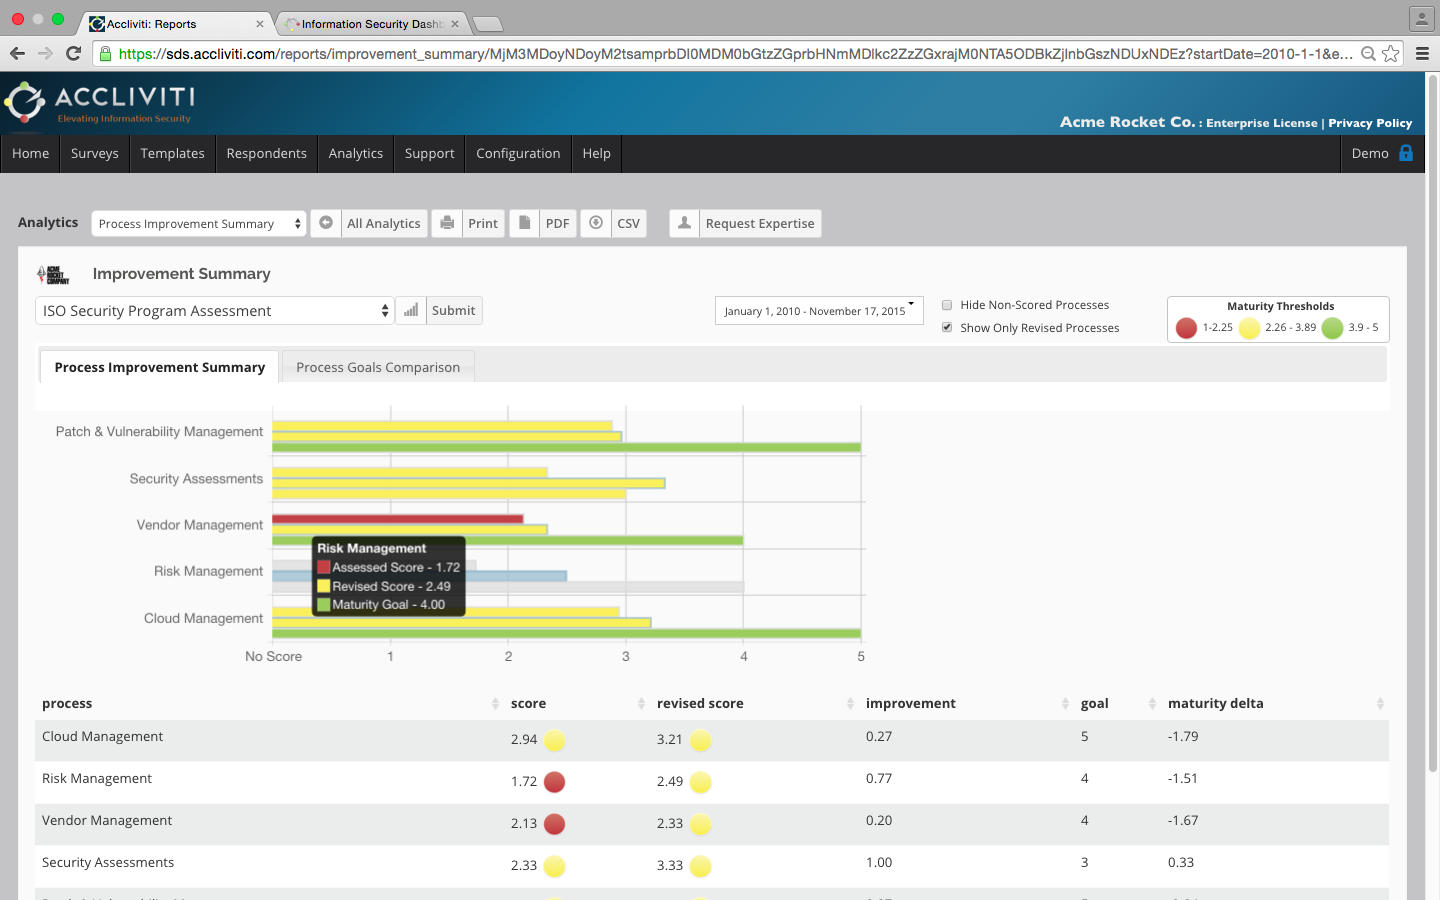 Image of the Process Improvement Summary screen of the Accliviti tool - reports metrics on maturity level of the information security program itself